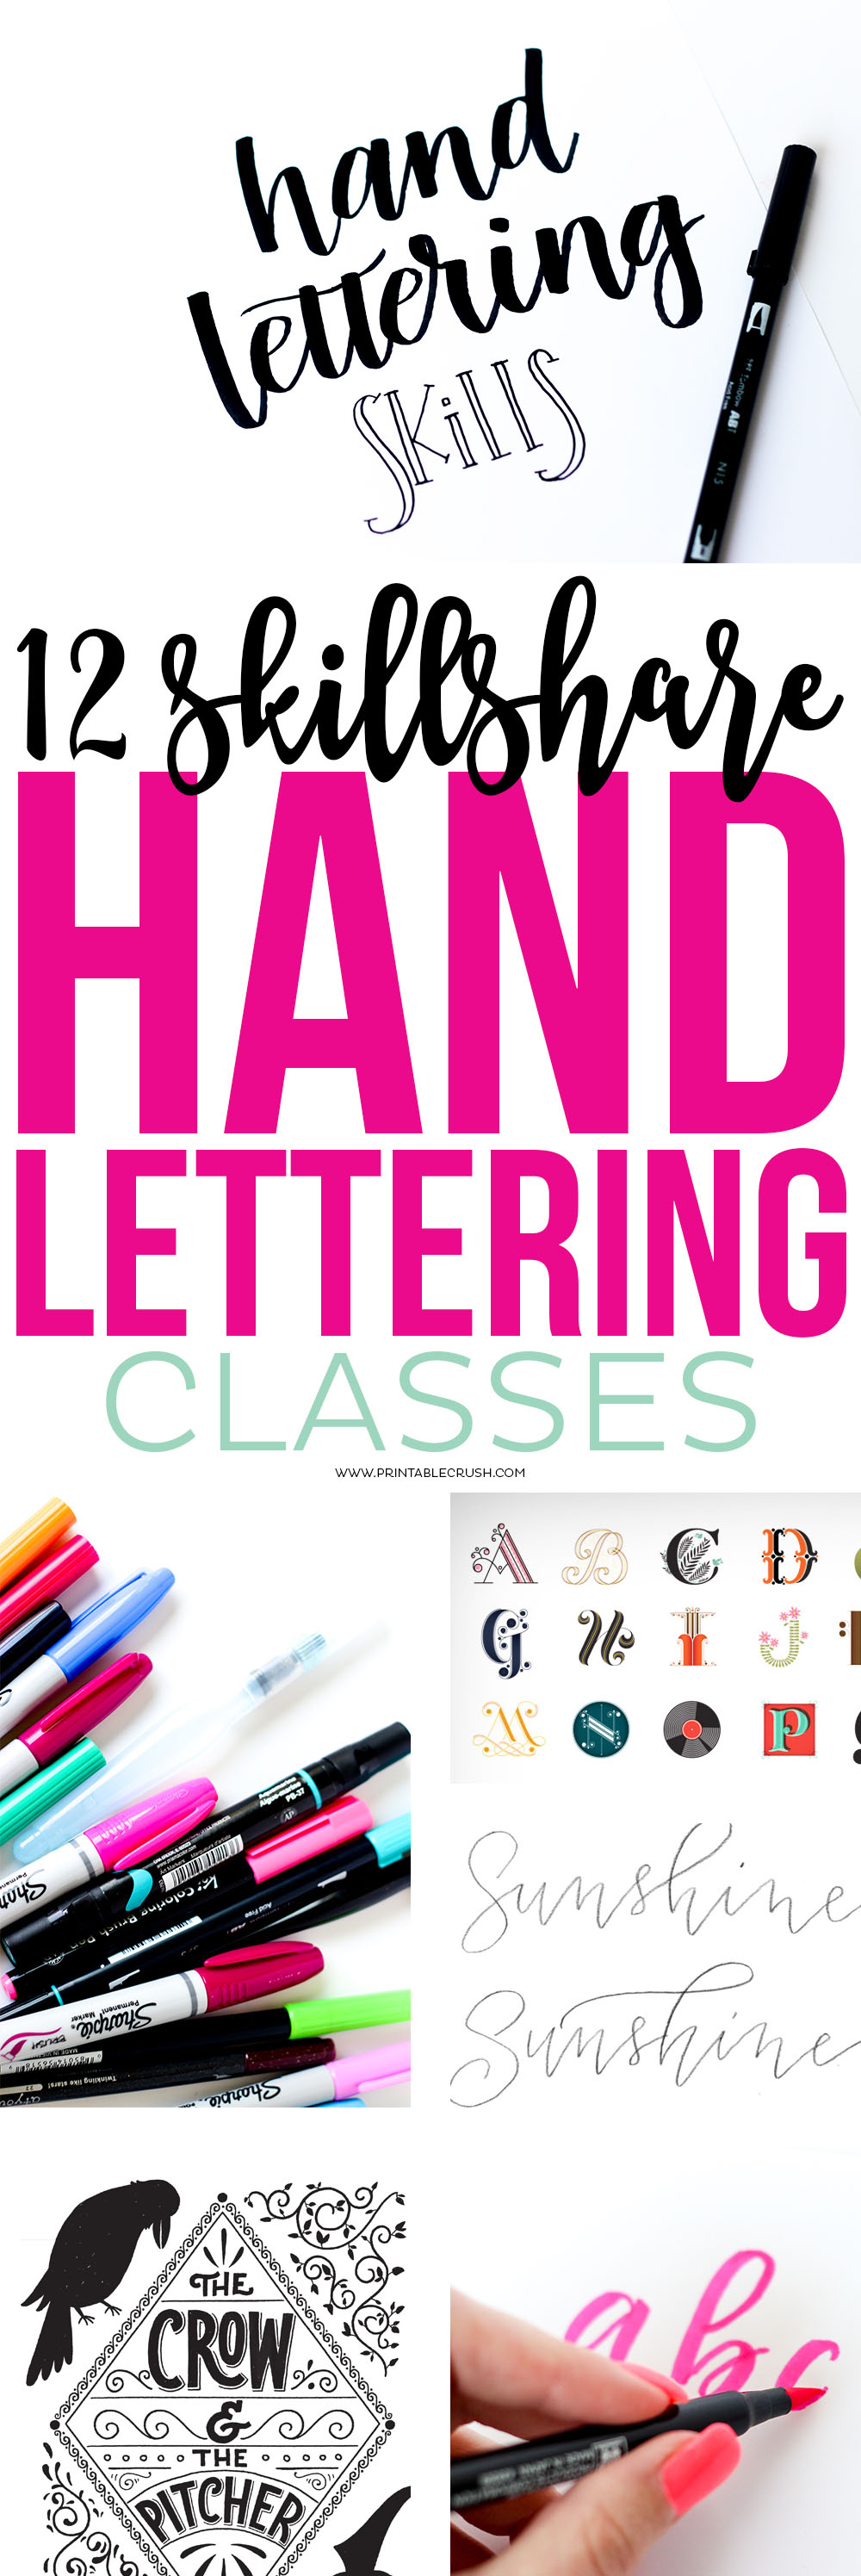 Check out these 12 Skillshare Classes that will help you improve your Hand Lettering Skills!